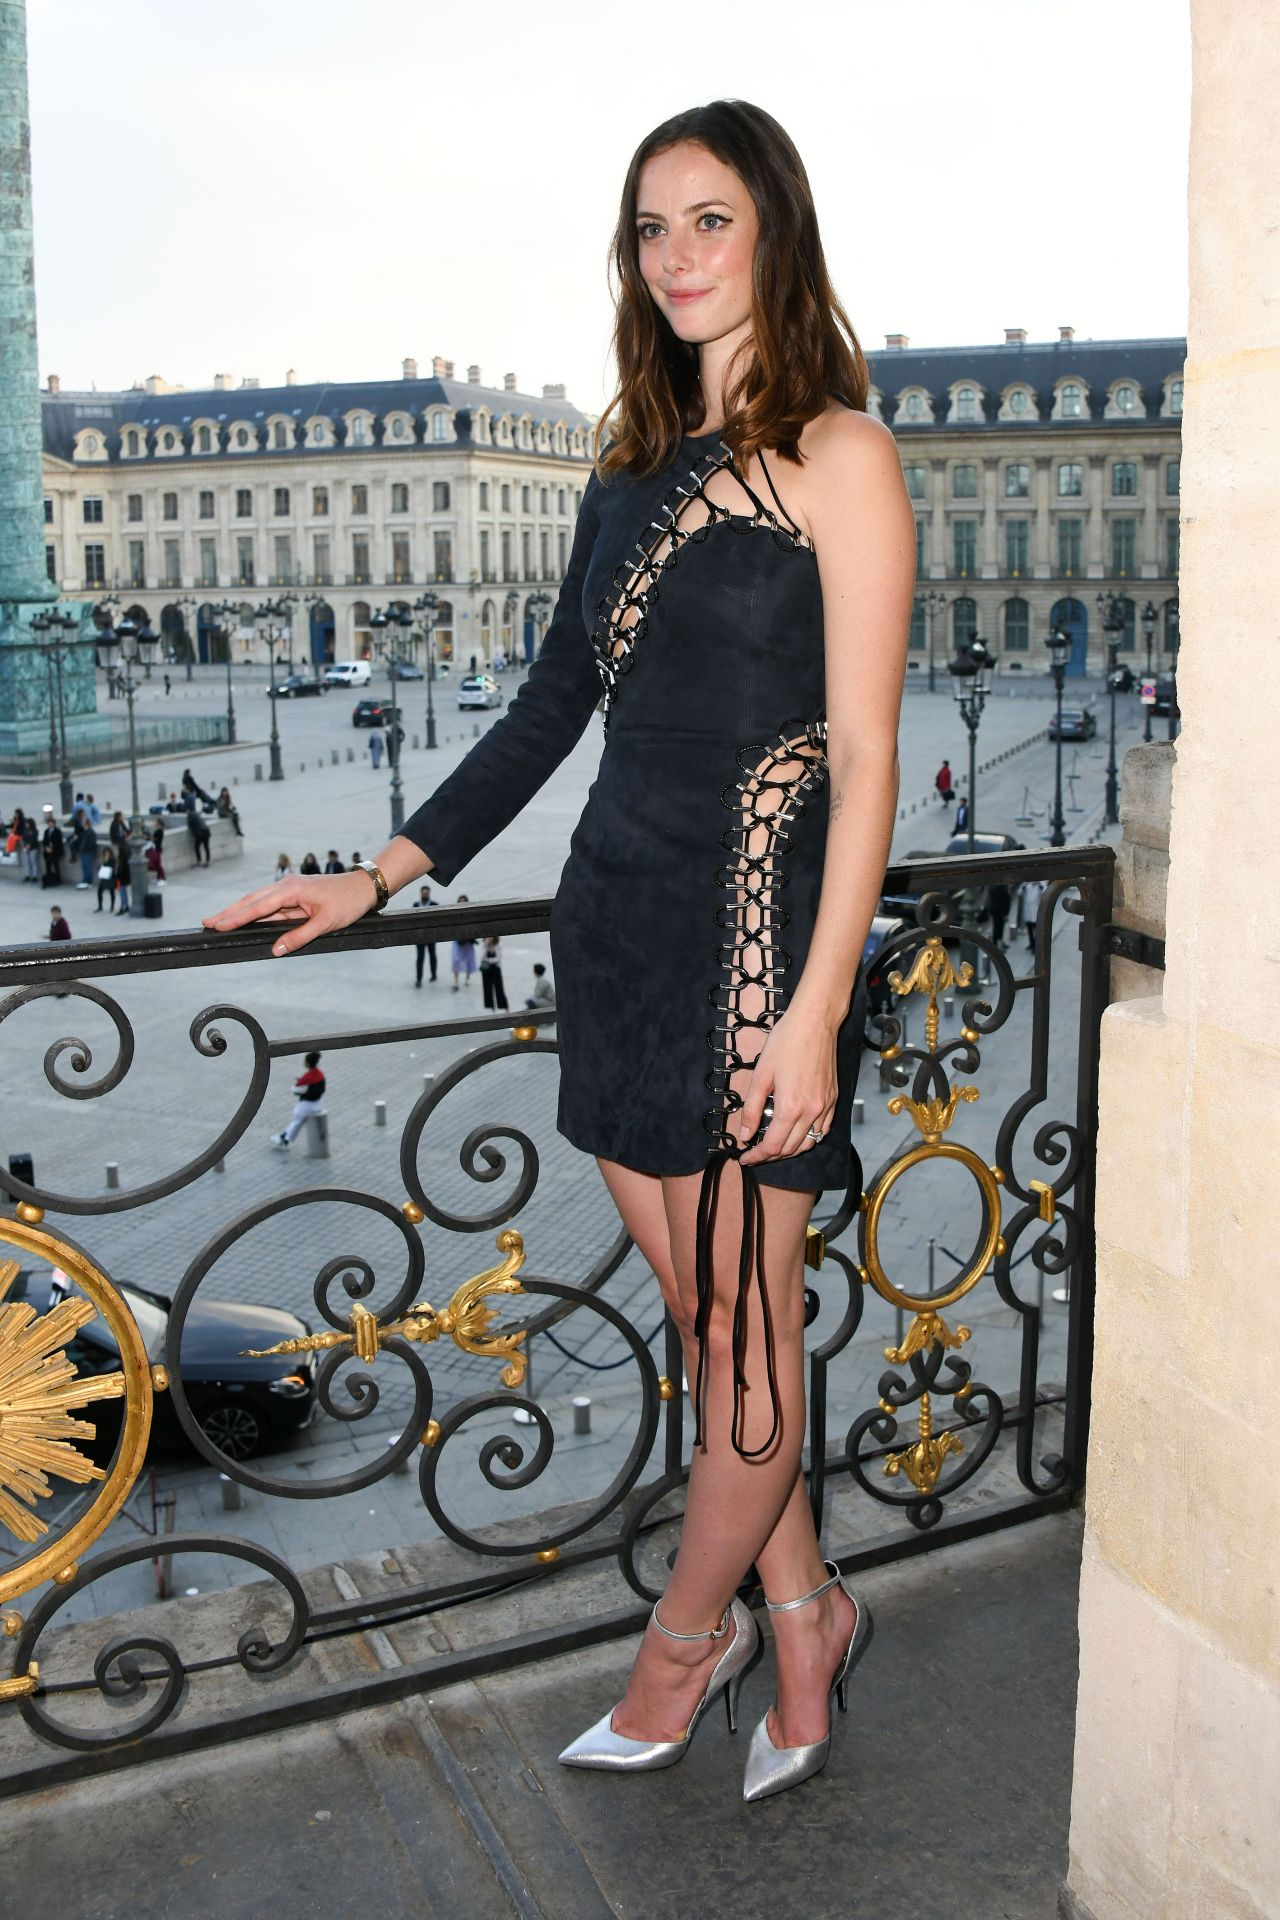 http://celebmafia.com/wp-content/uploads/2018/05/kaya-scodelario-karl-lagerfeld-modelco.-make-up-line-launch-in-paris-05-15-2018-12.jpg